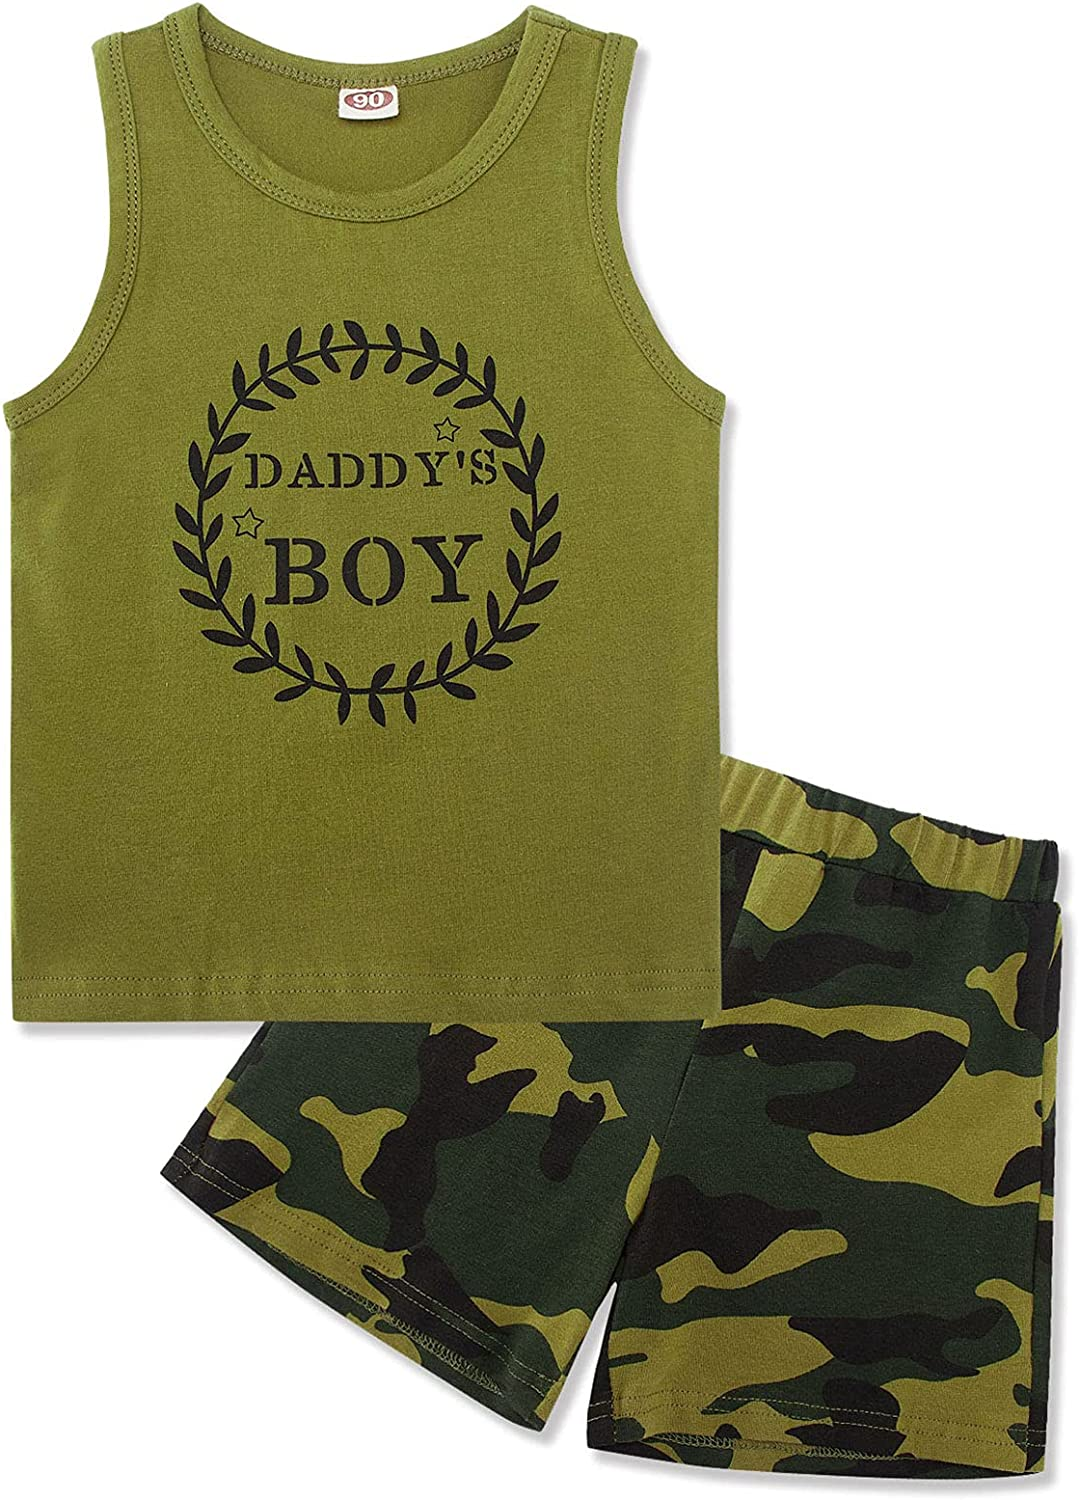 Kids4ever 2Pcs Baby Boys Summer Clothes Sets Cute Letters Print Tank Tops Sleeveless Shirt + Shorts Pants Outfits